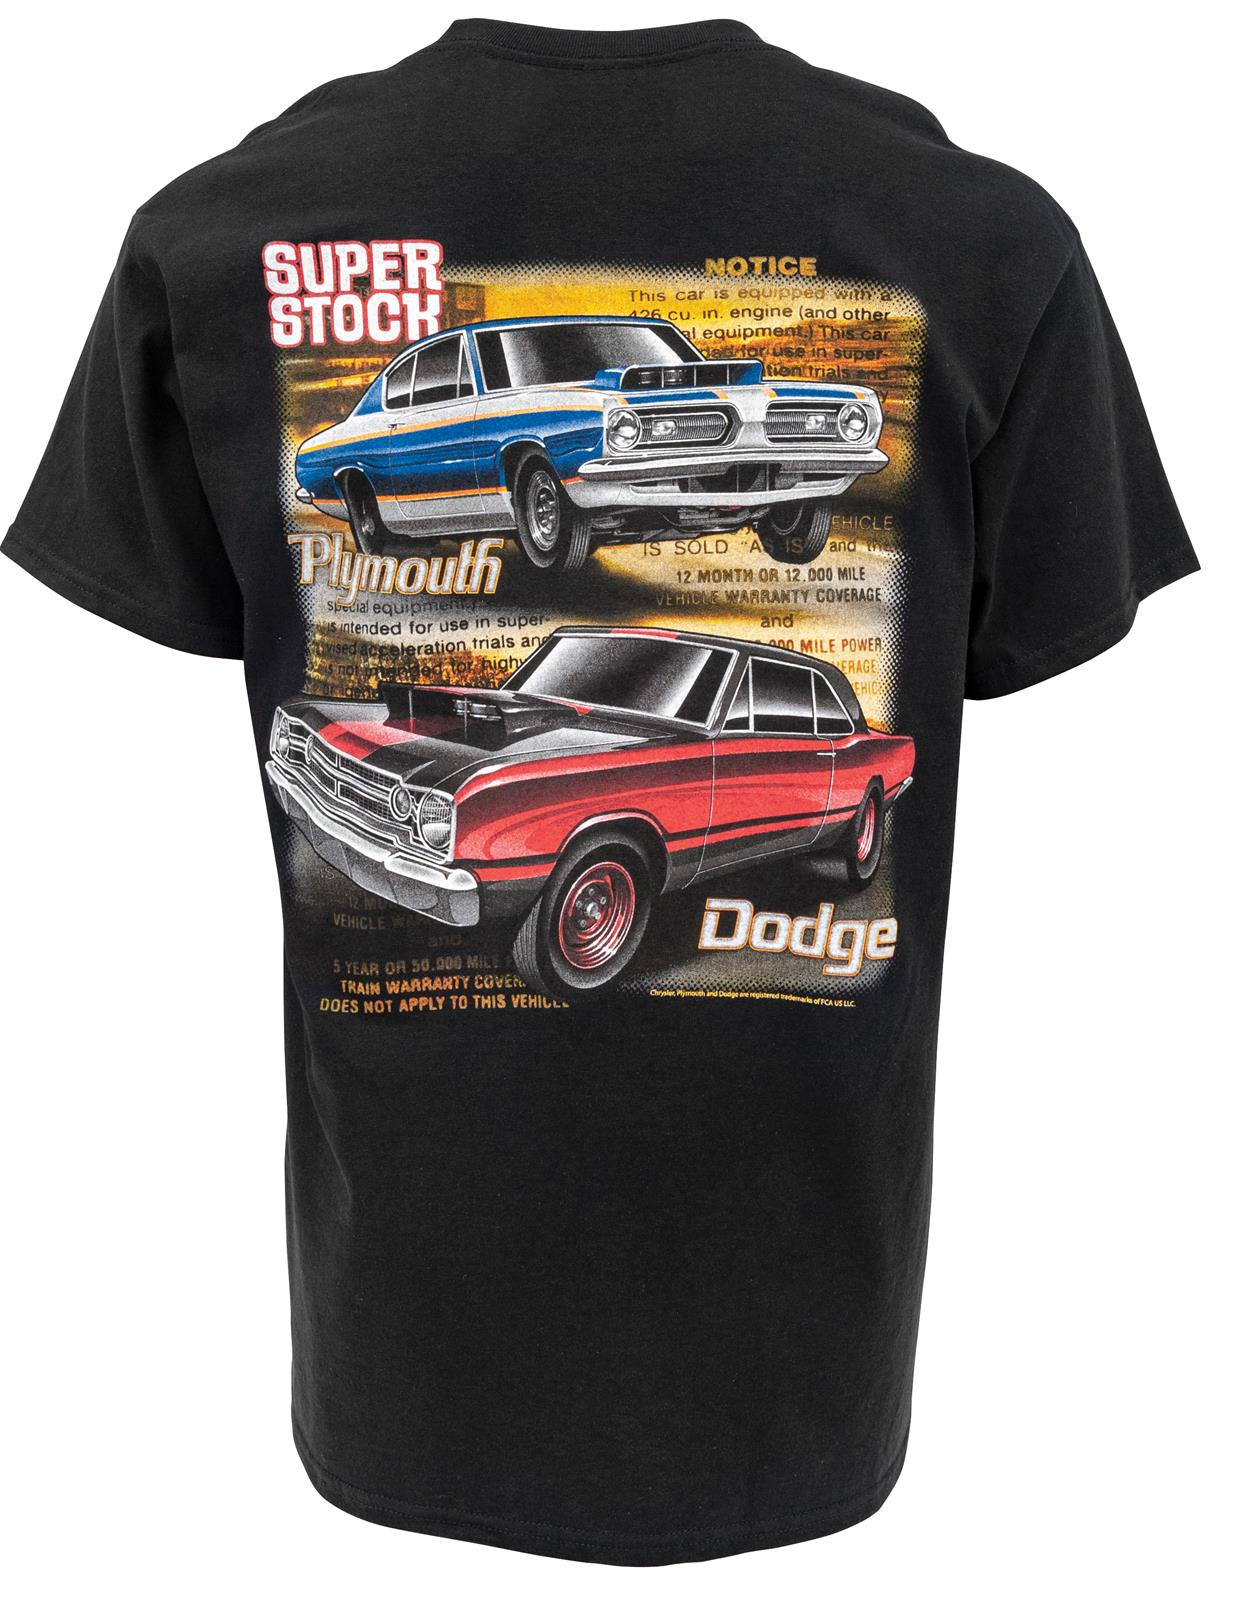 Plymouth Dodge Super Stock T-Shirt 483144